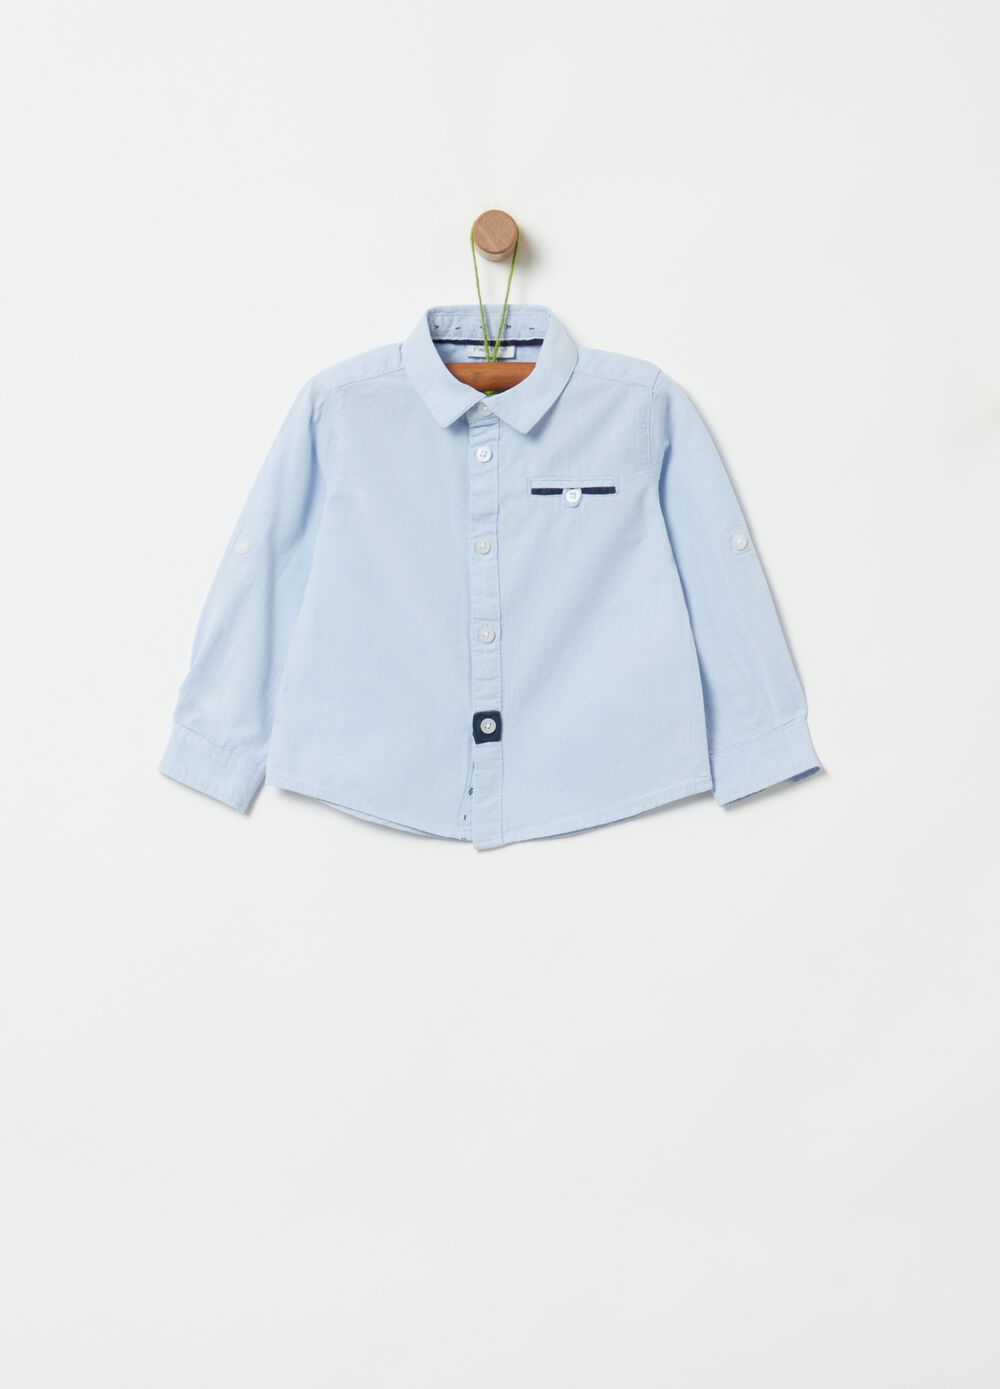 100% organic cotton shirt with pocket